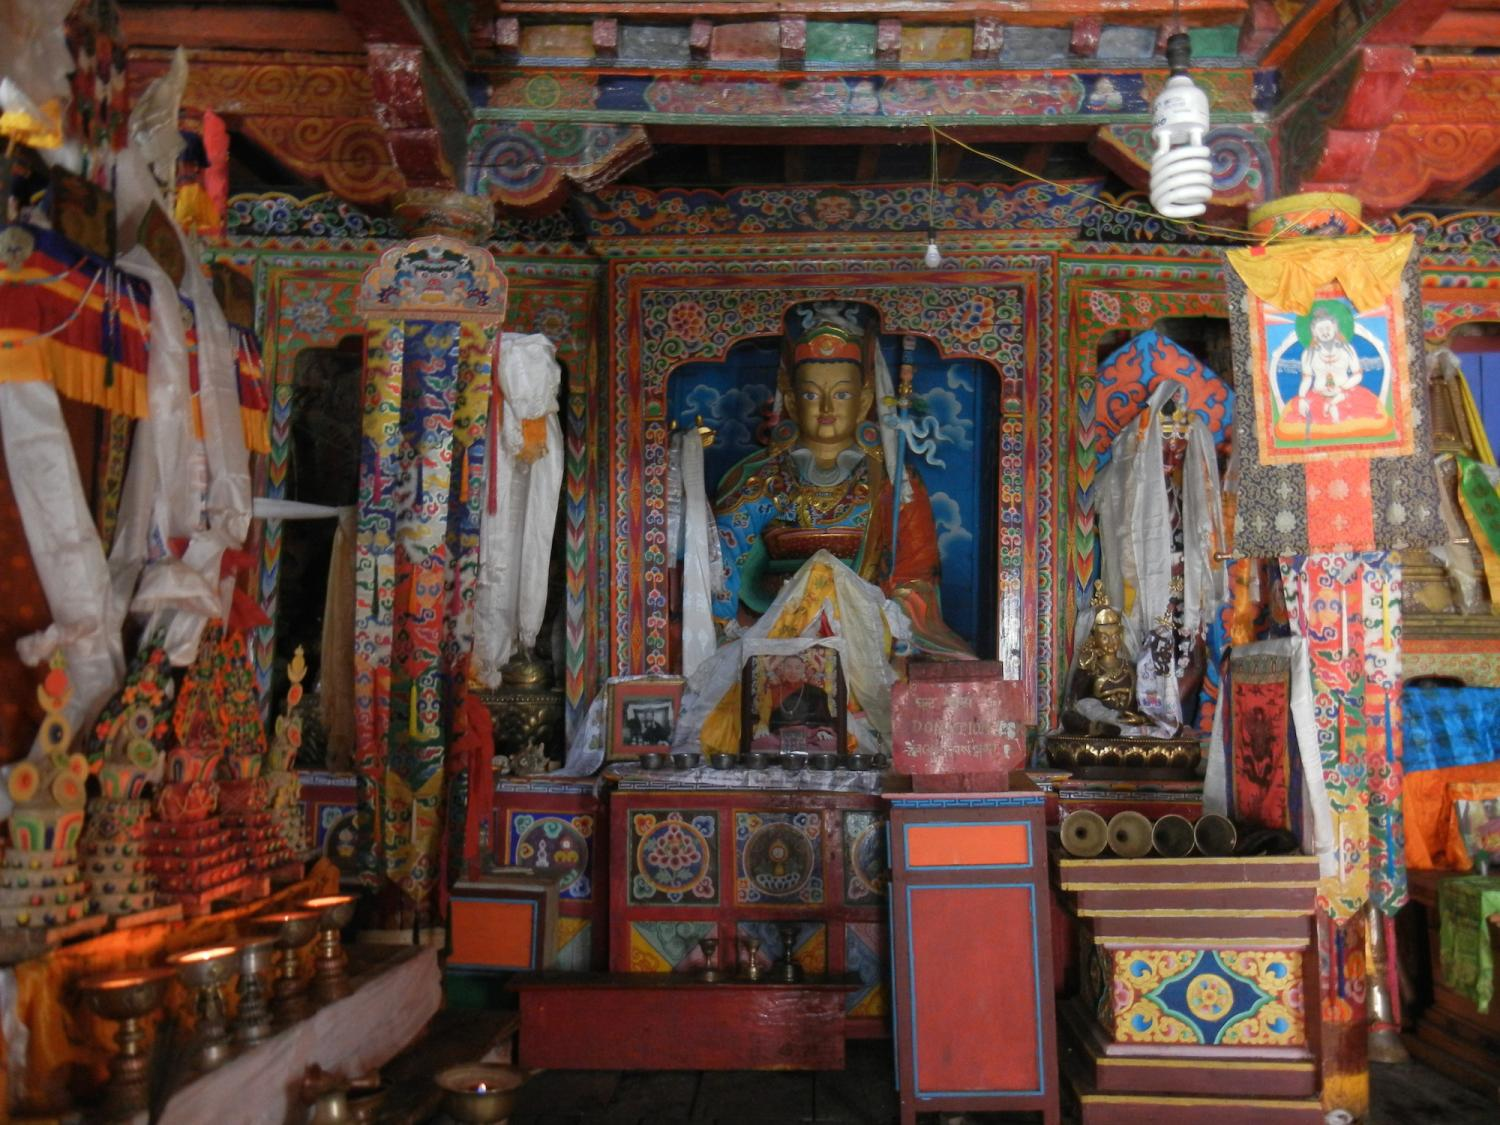 he interior of the Sama gompa. Note the image of Thangthong Gyalpo, the traditional founder of lhamo or Tibetan opera, in the upper right